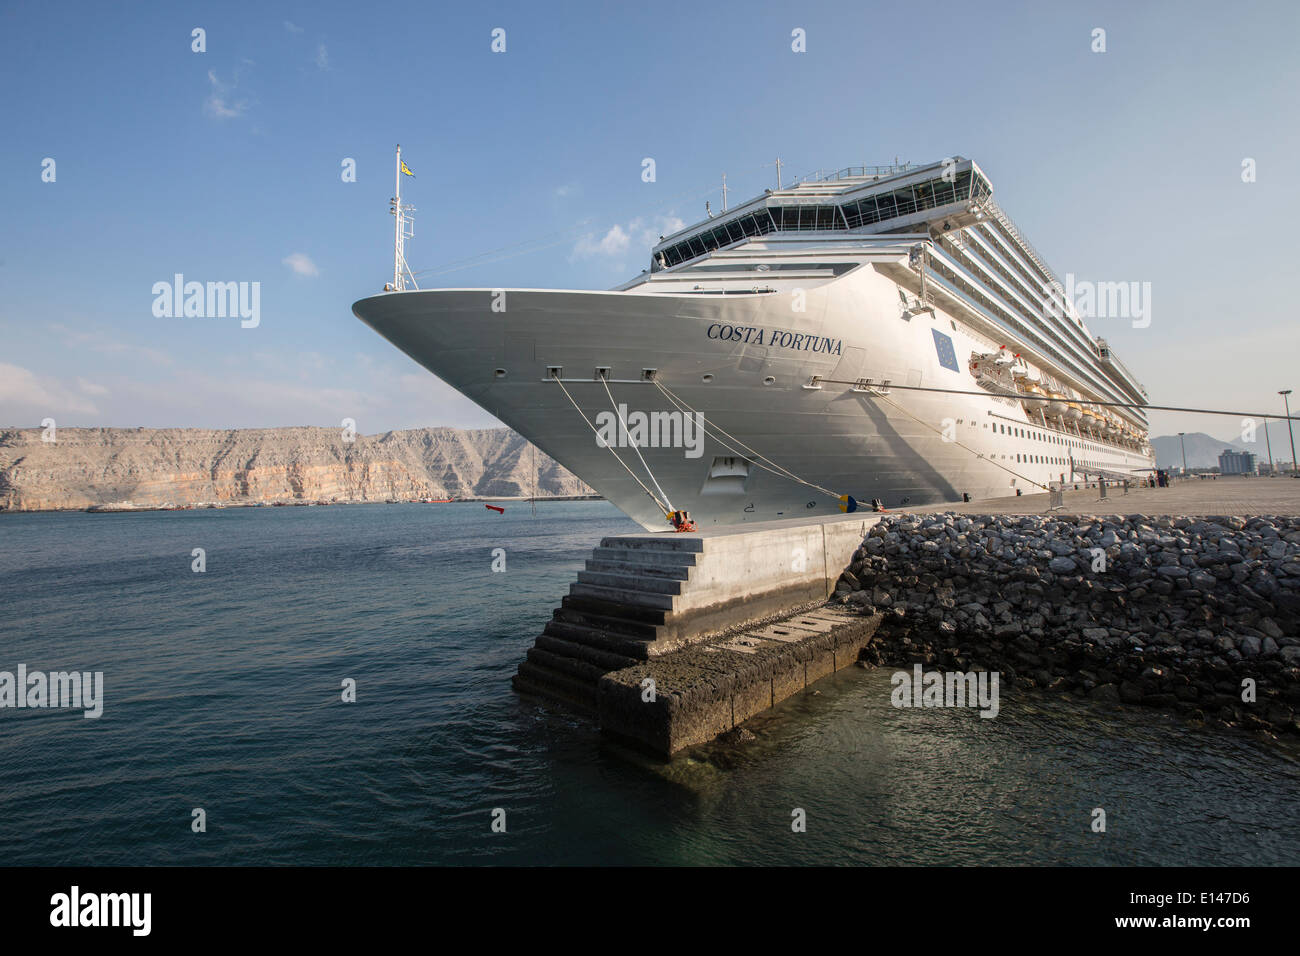 Oman, Khasab, Cruise ship Costa Fortuna - Stock Image